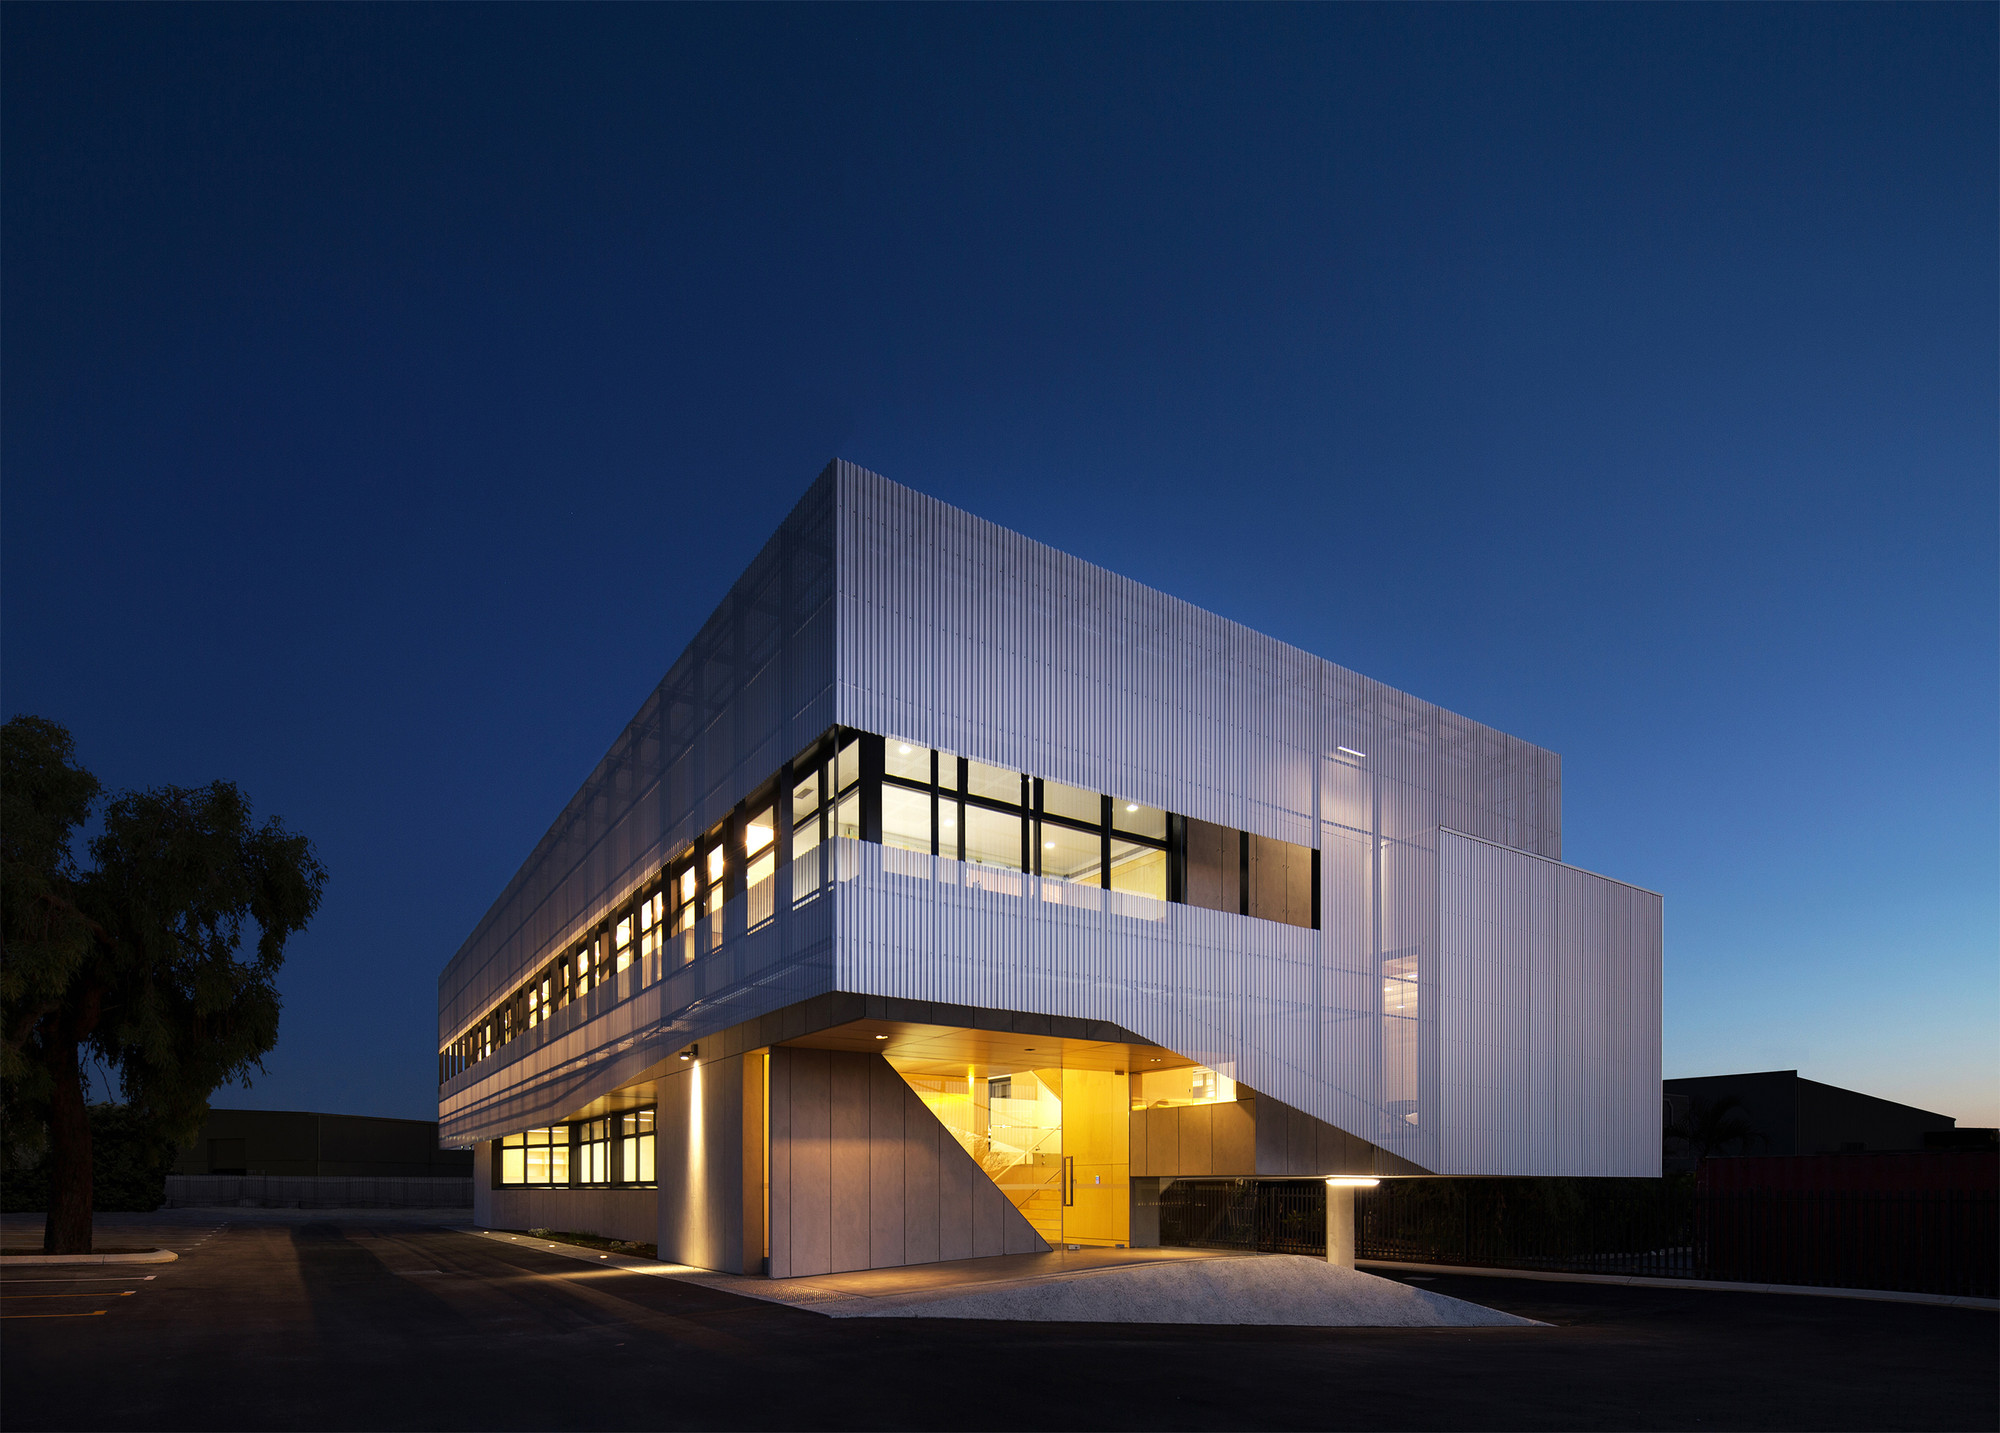 Sanwell office building braham architects archdaily for Construction architect